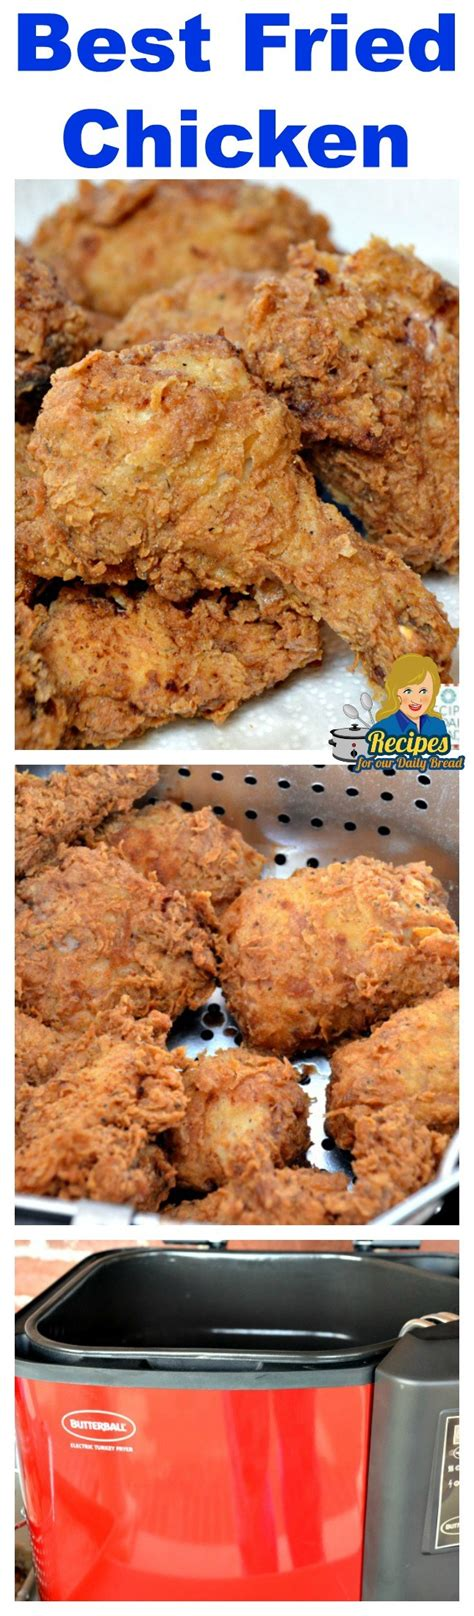 best fried chicken recipe how to make the best ever fried chicken recipe